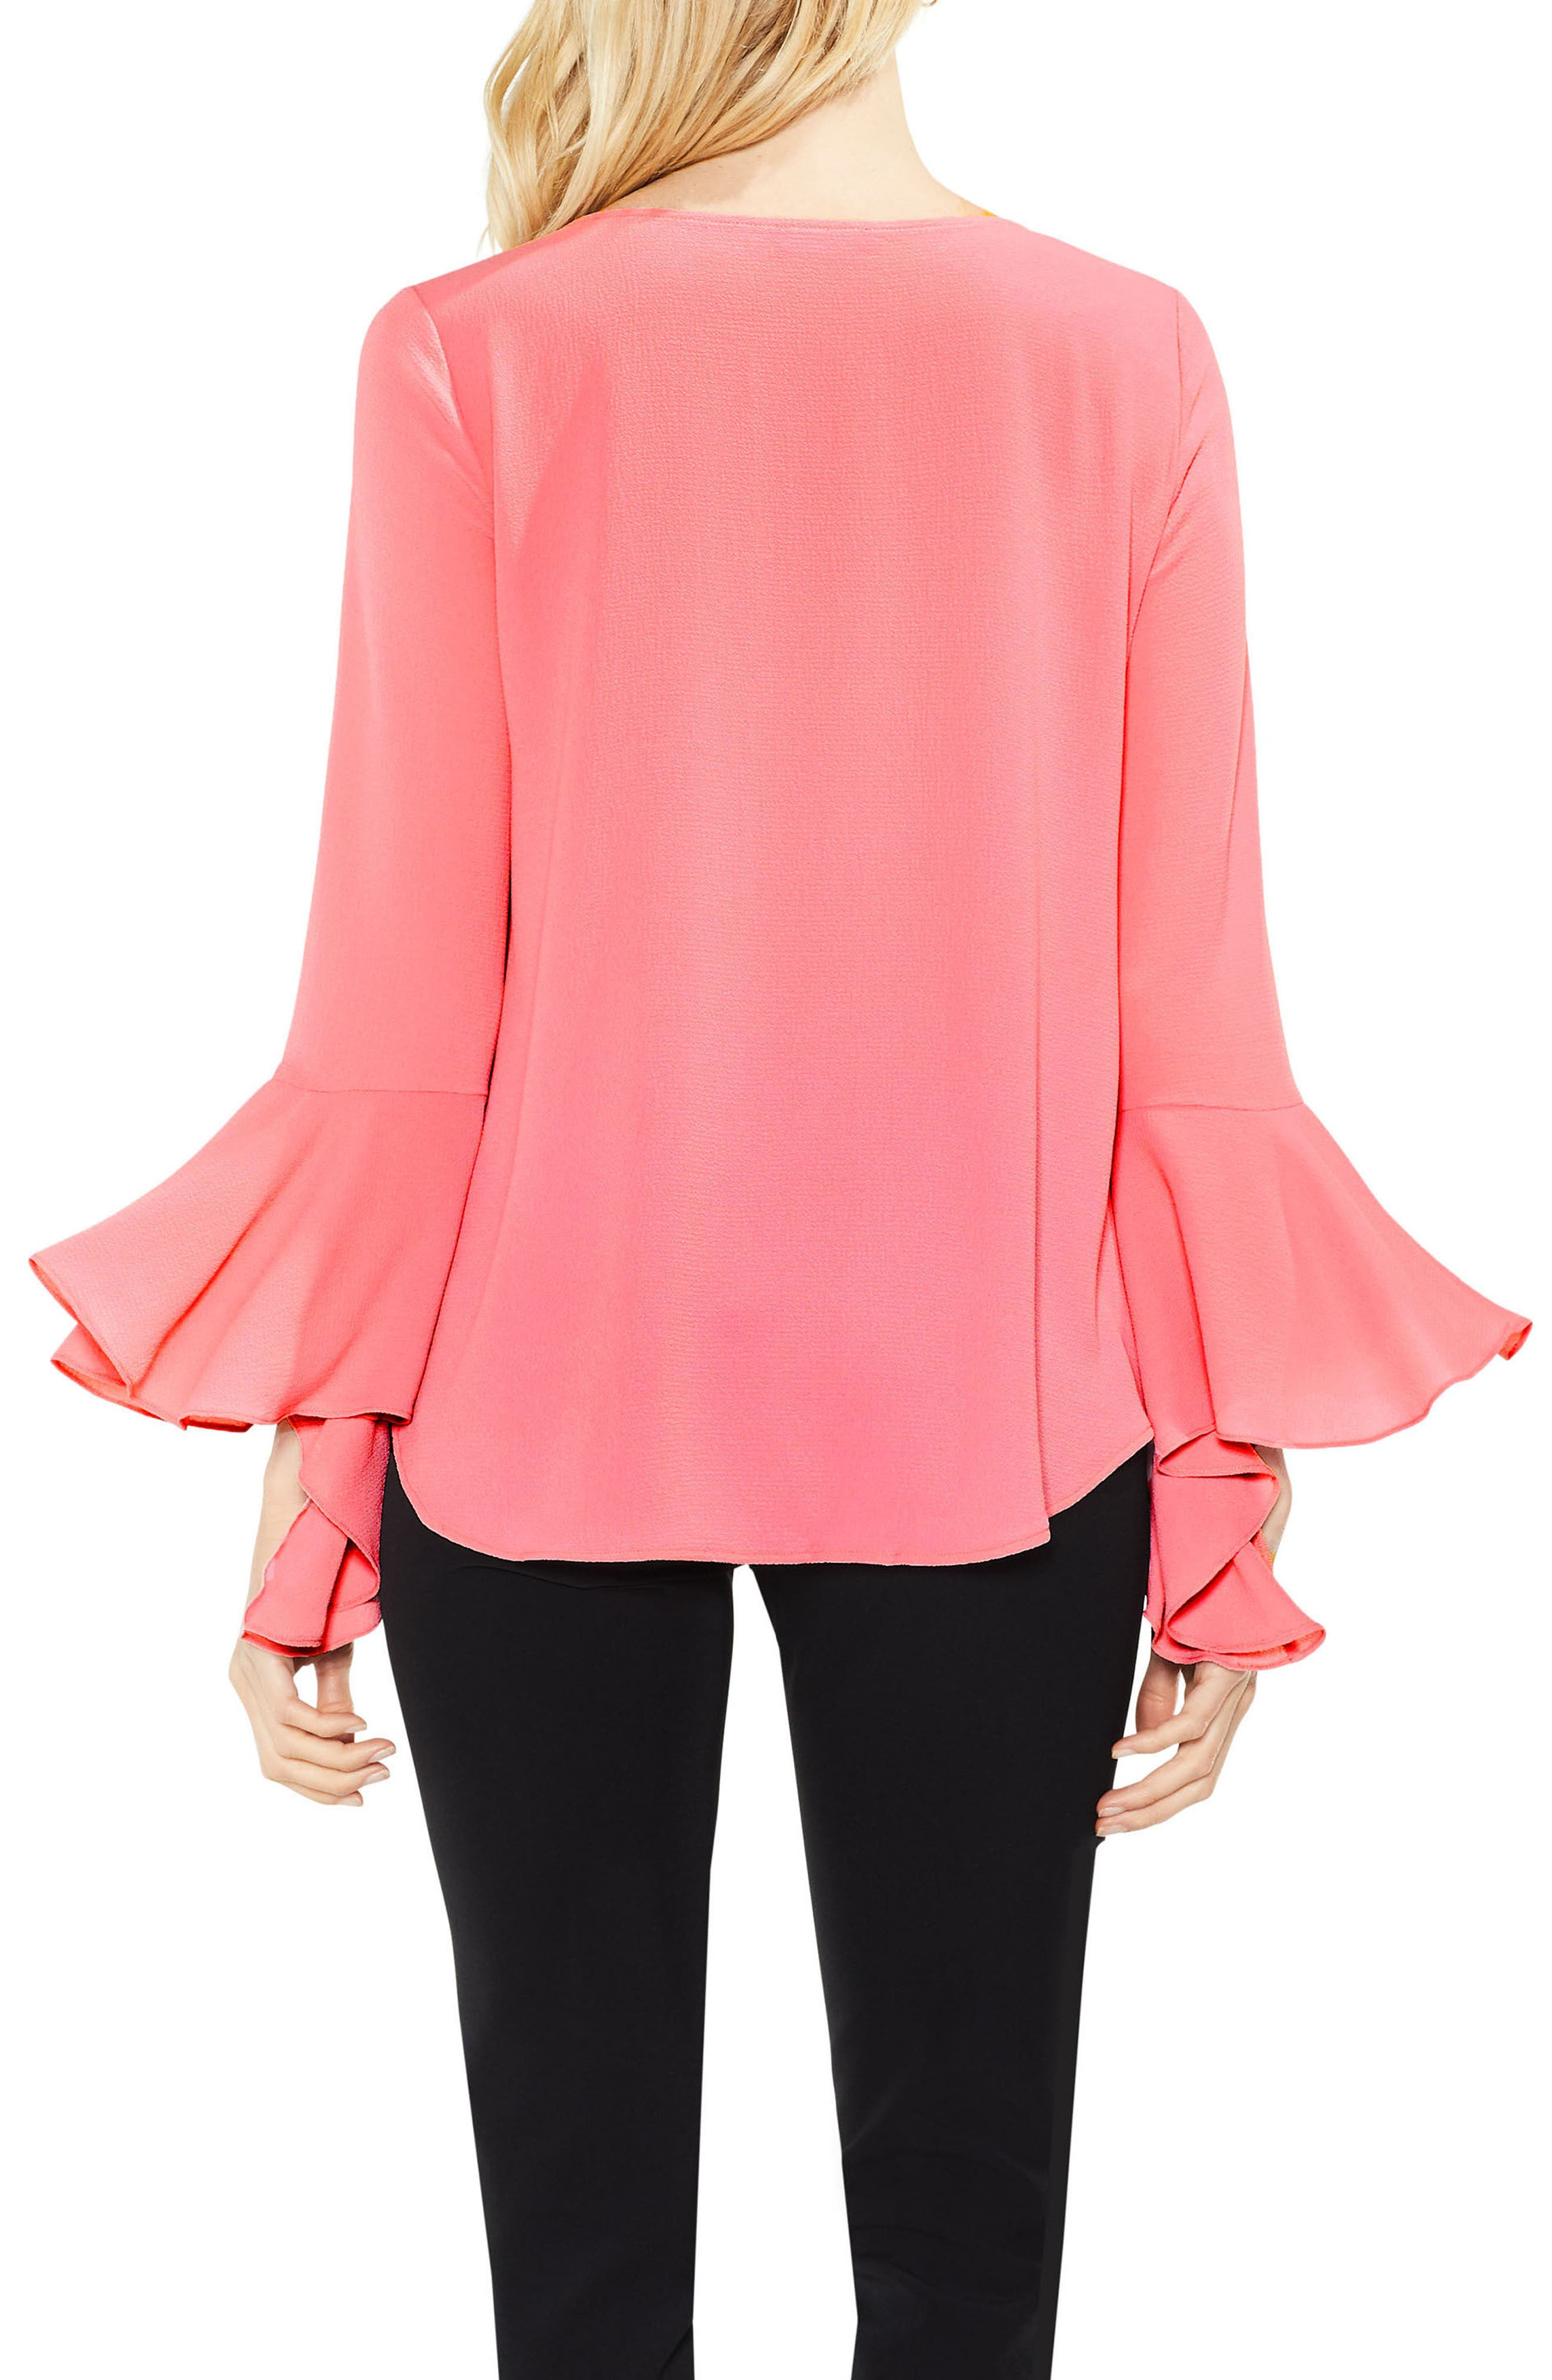 Bell Cuff Foldover Blouse,                             Alternate thumbnail 8, color,